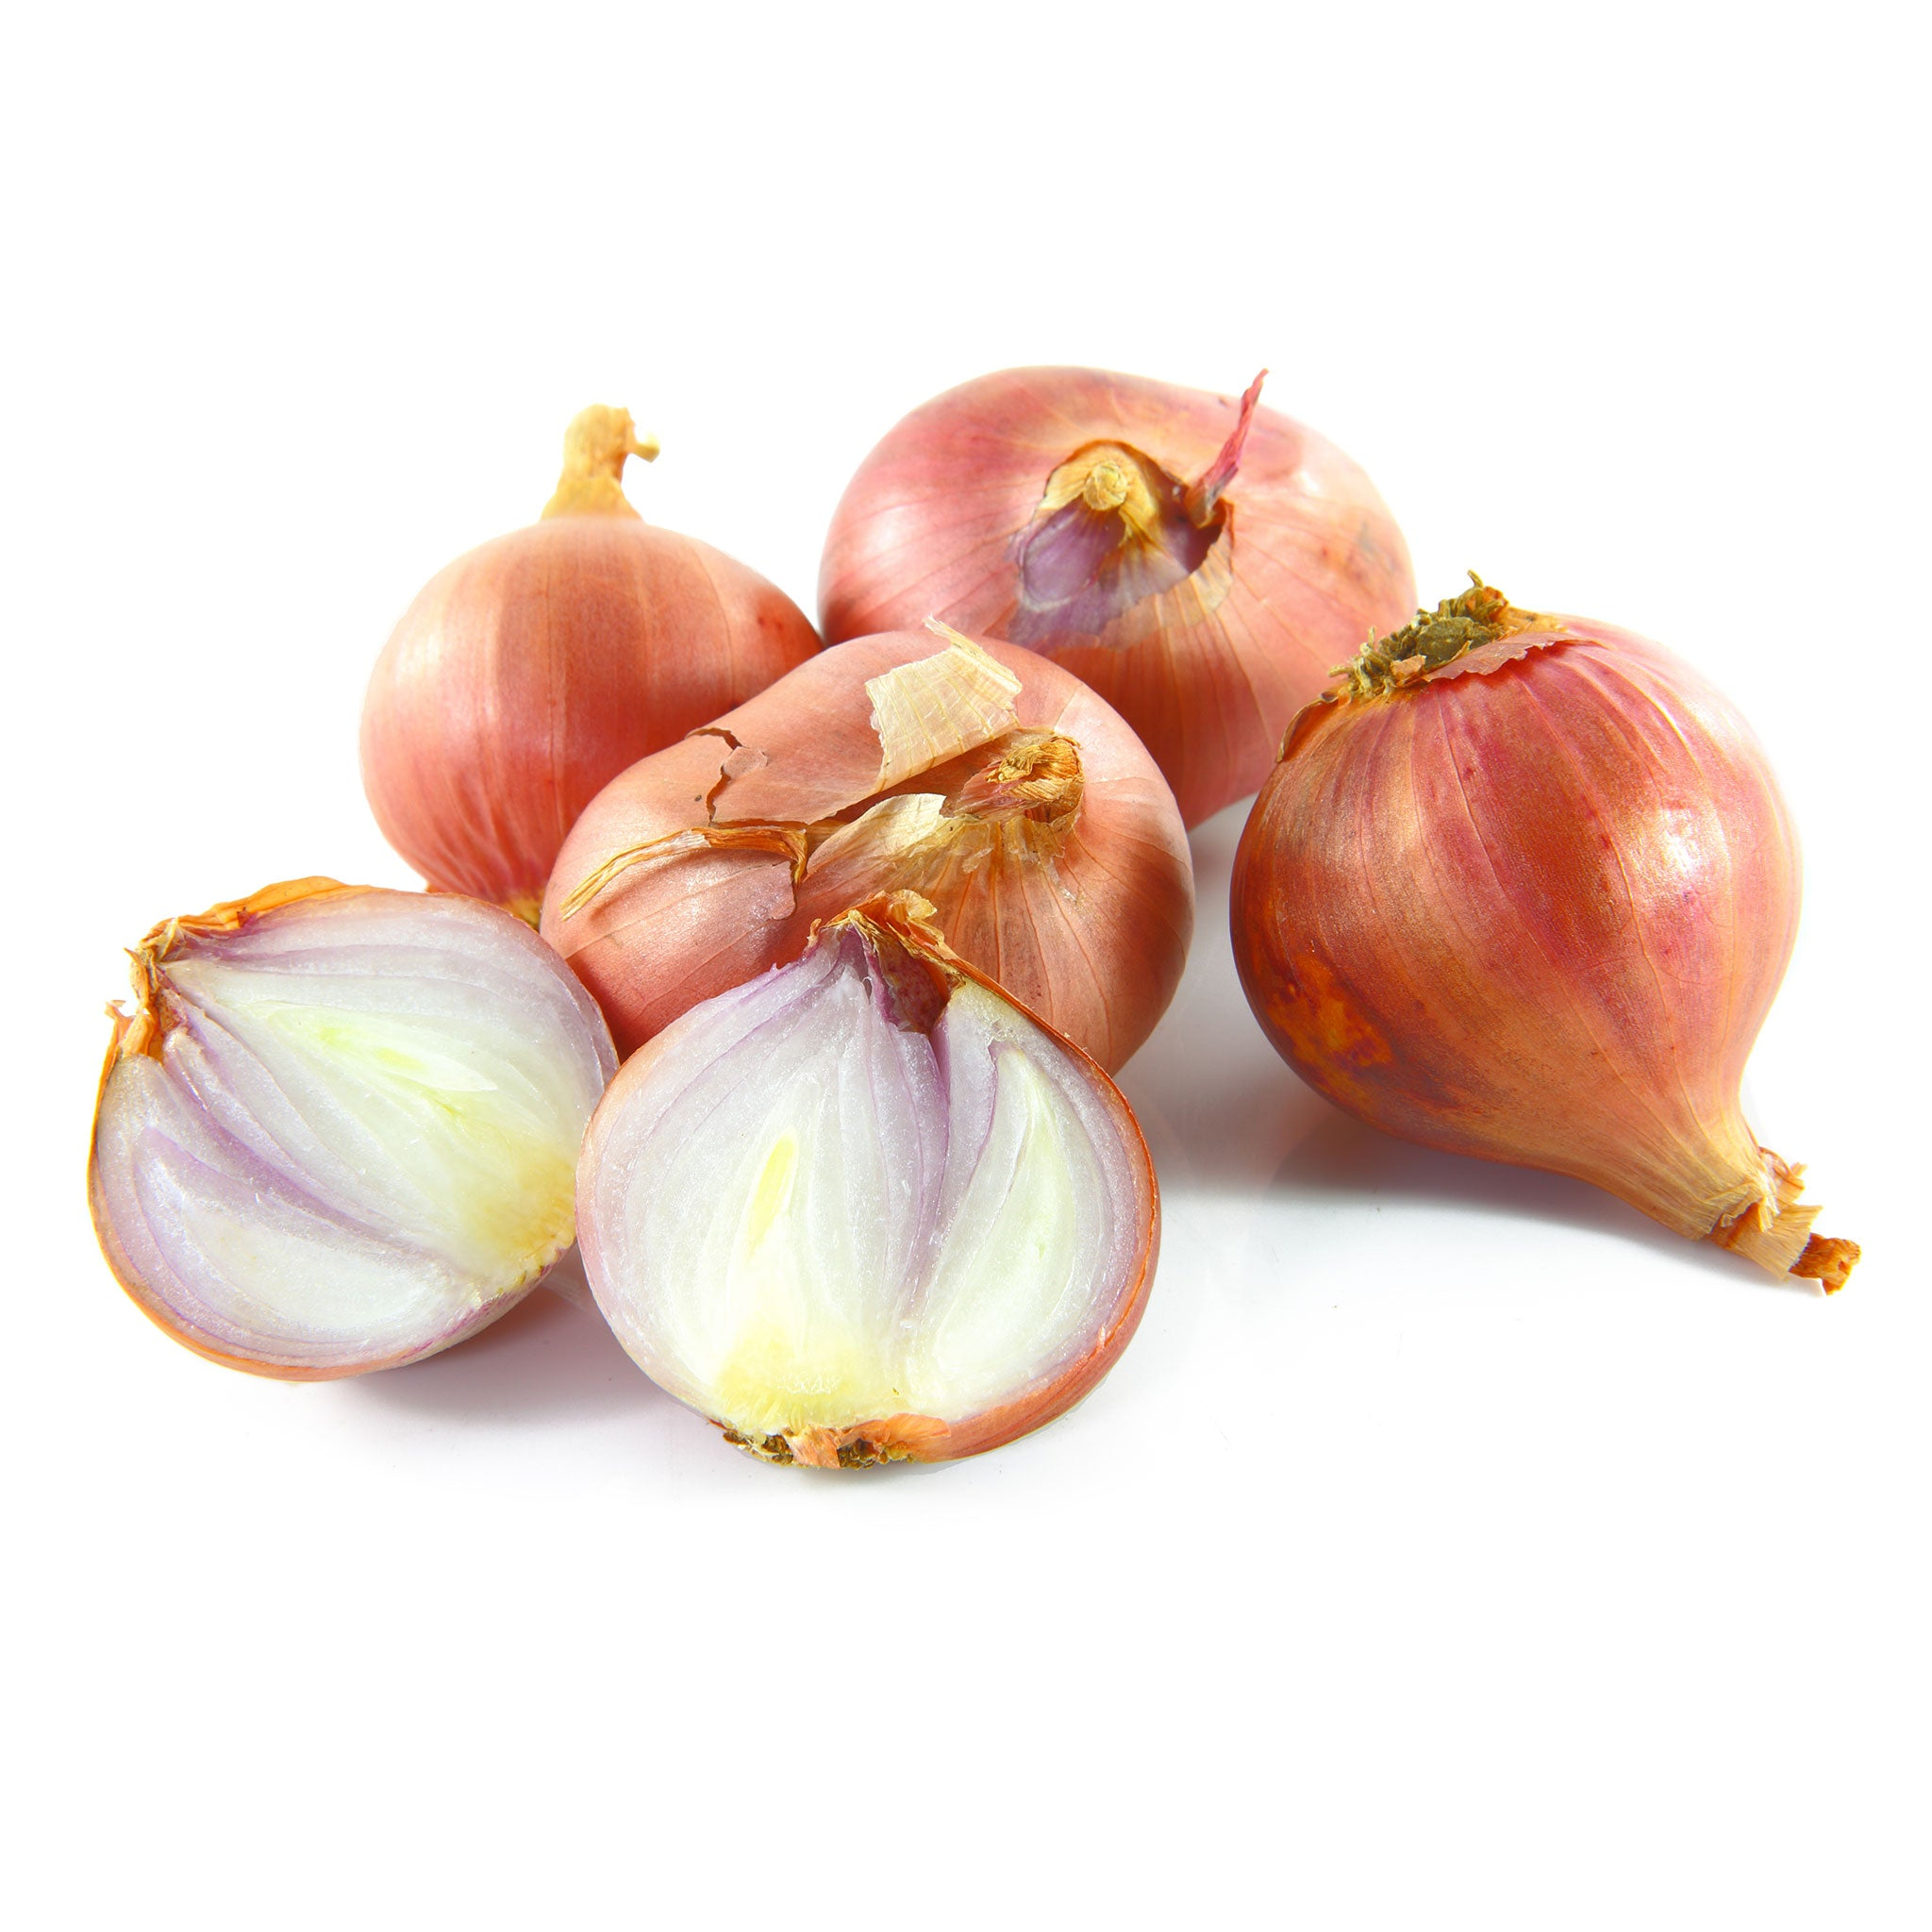 Fresh Thai red onion (shallots) 200g - imported weekly from Thailand